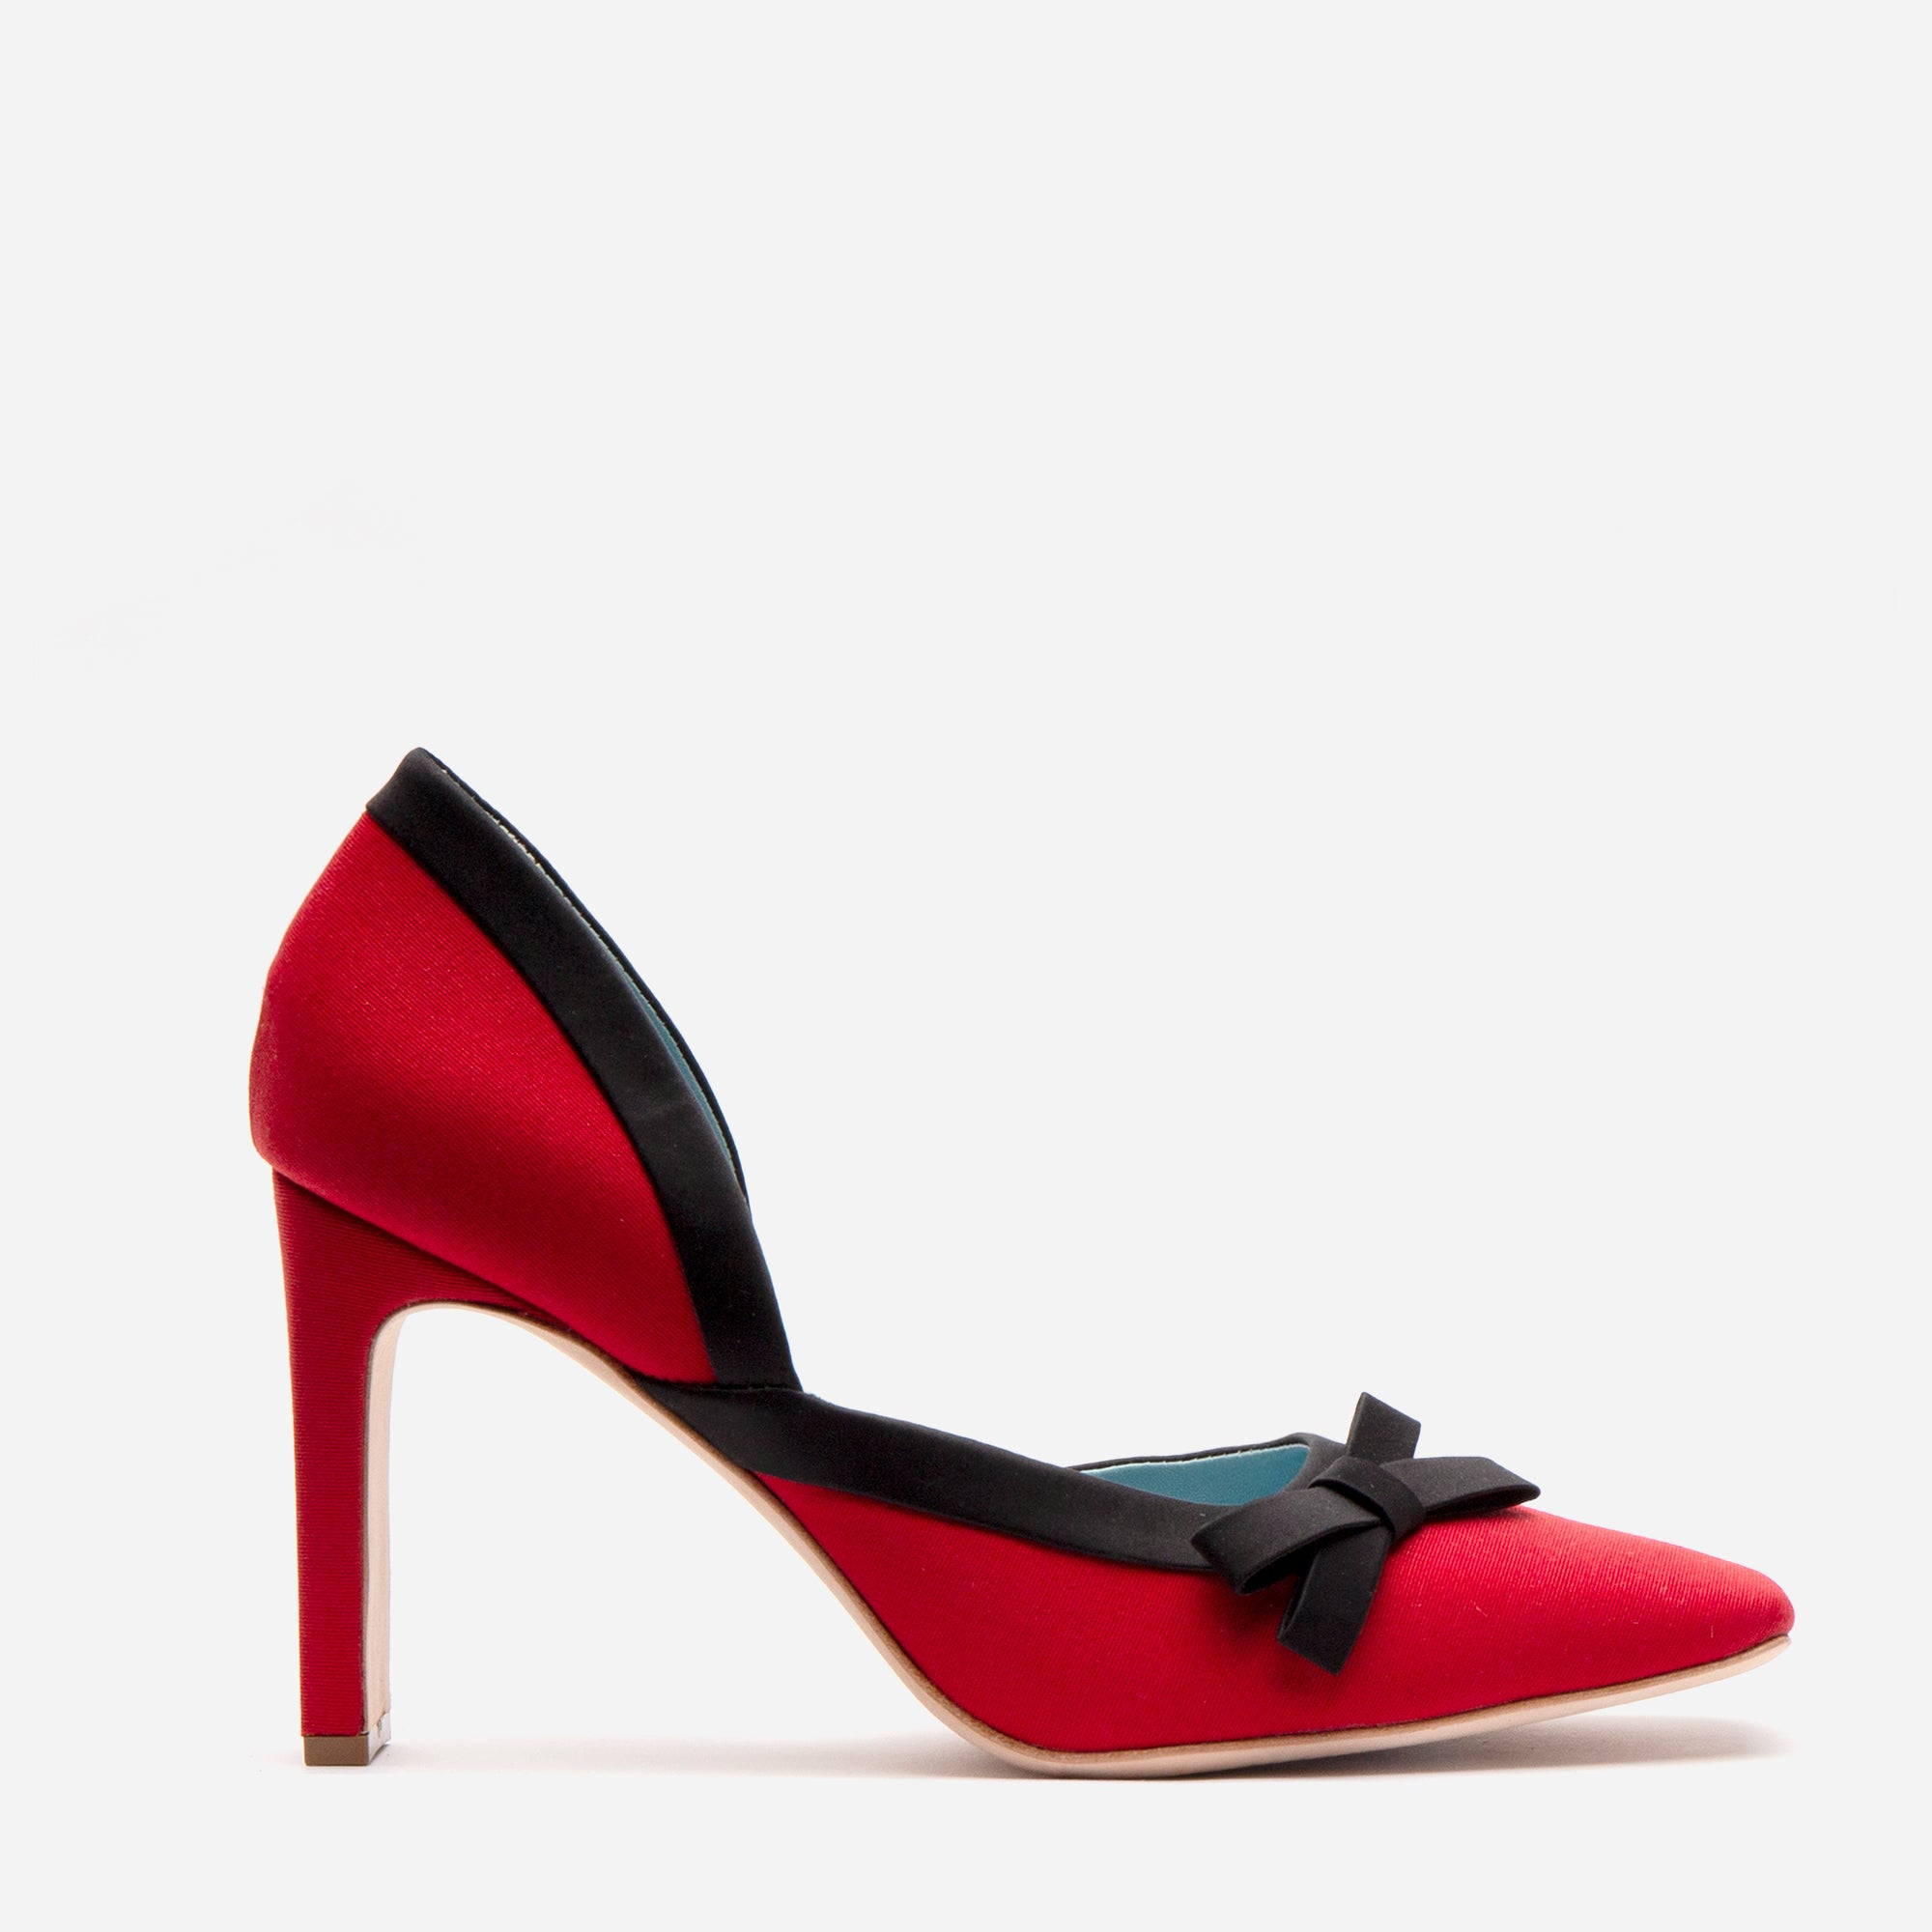 Sinclair Grosgrain Satin Heels Red Black